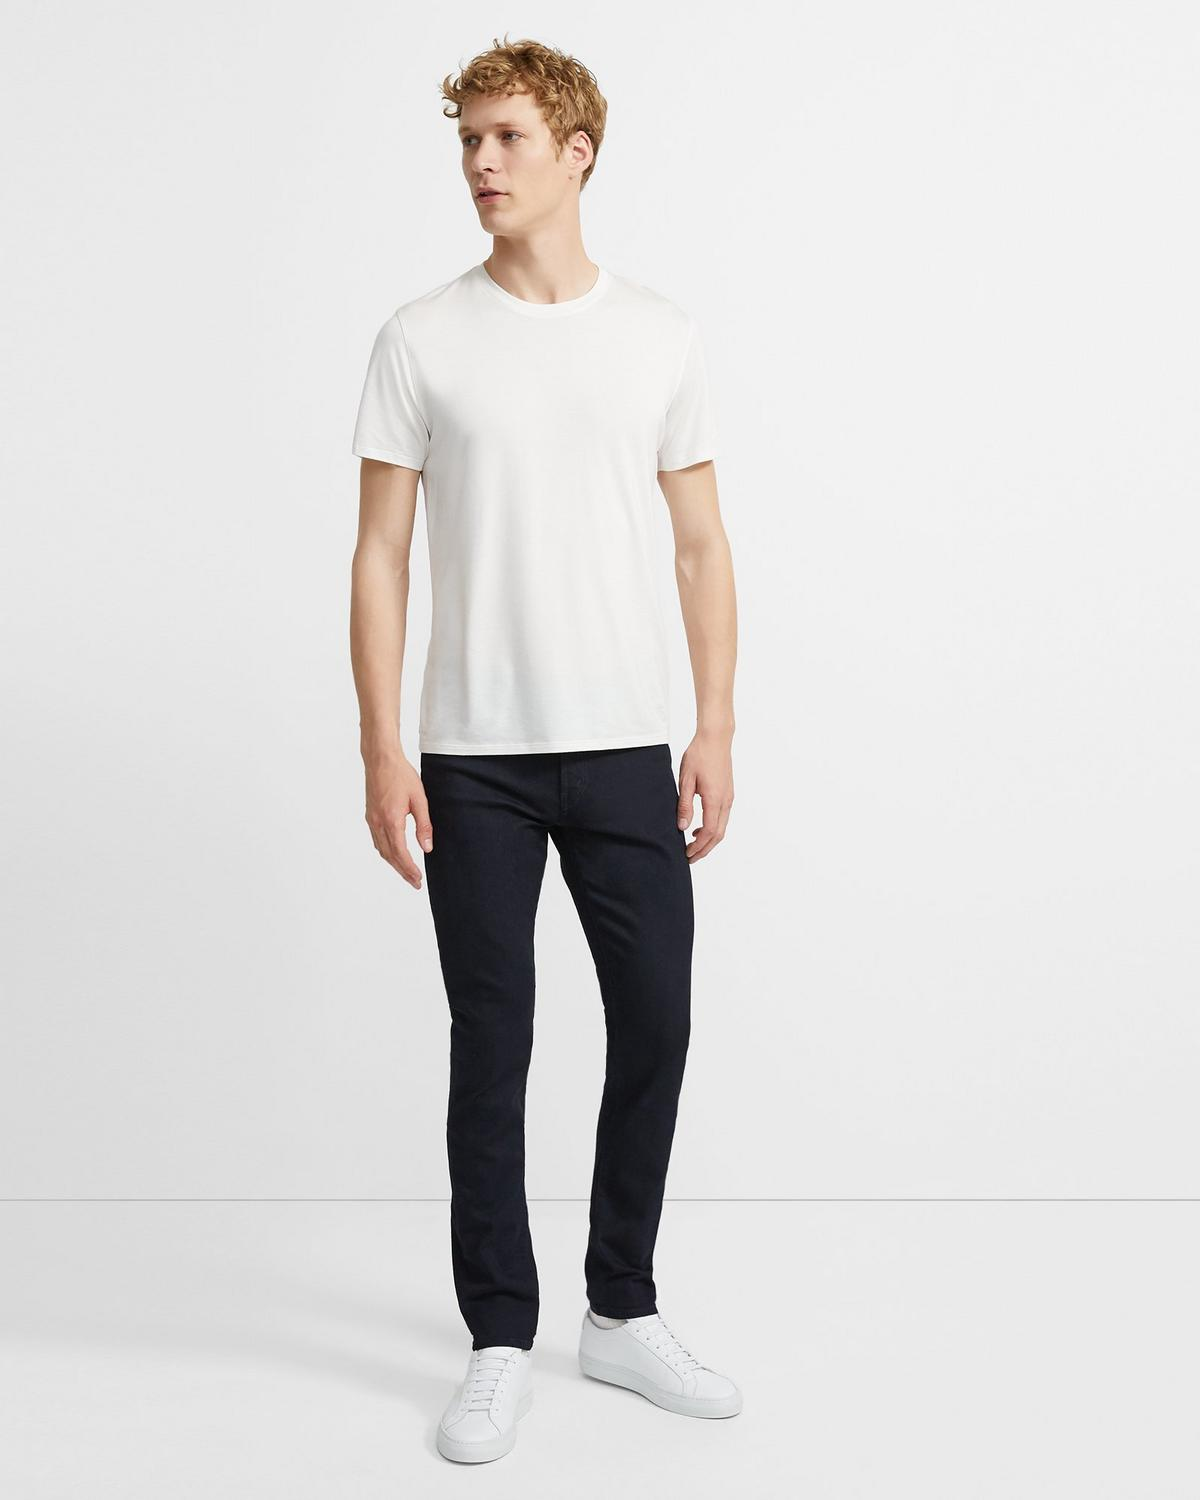 J Brand Mick Skinny Fit Jean in Black Fill